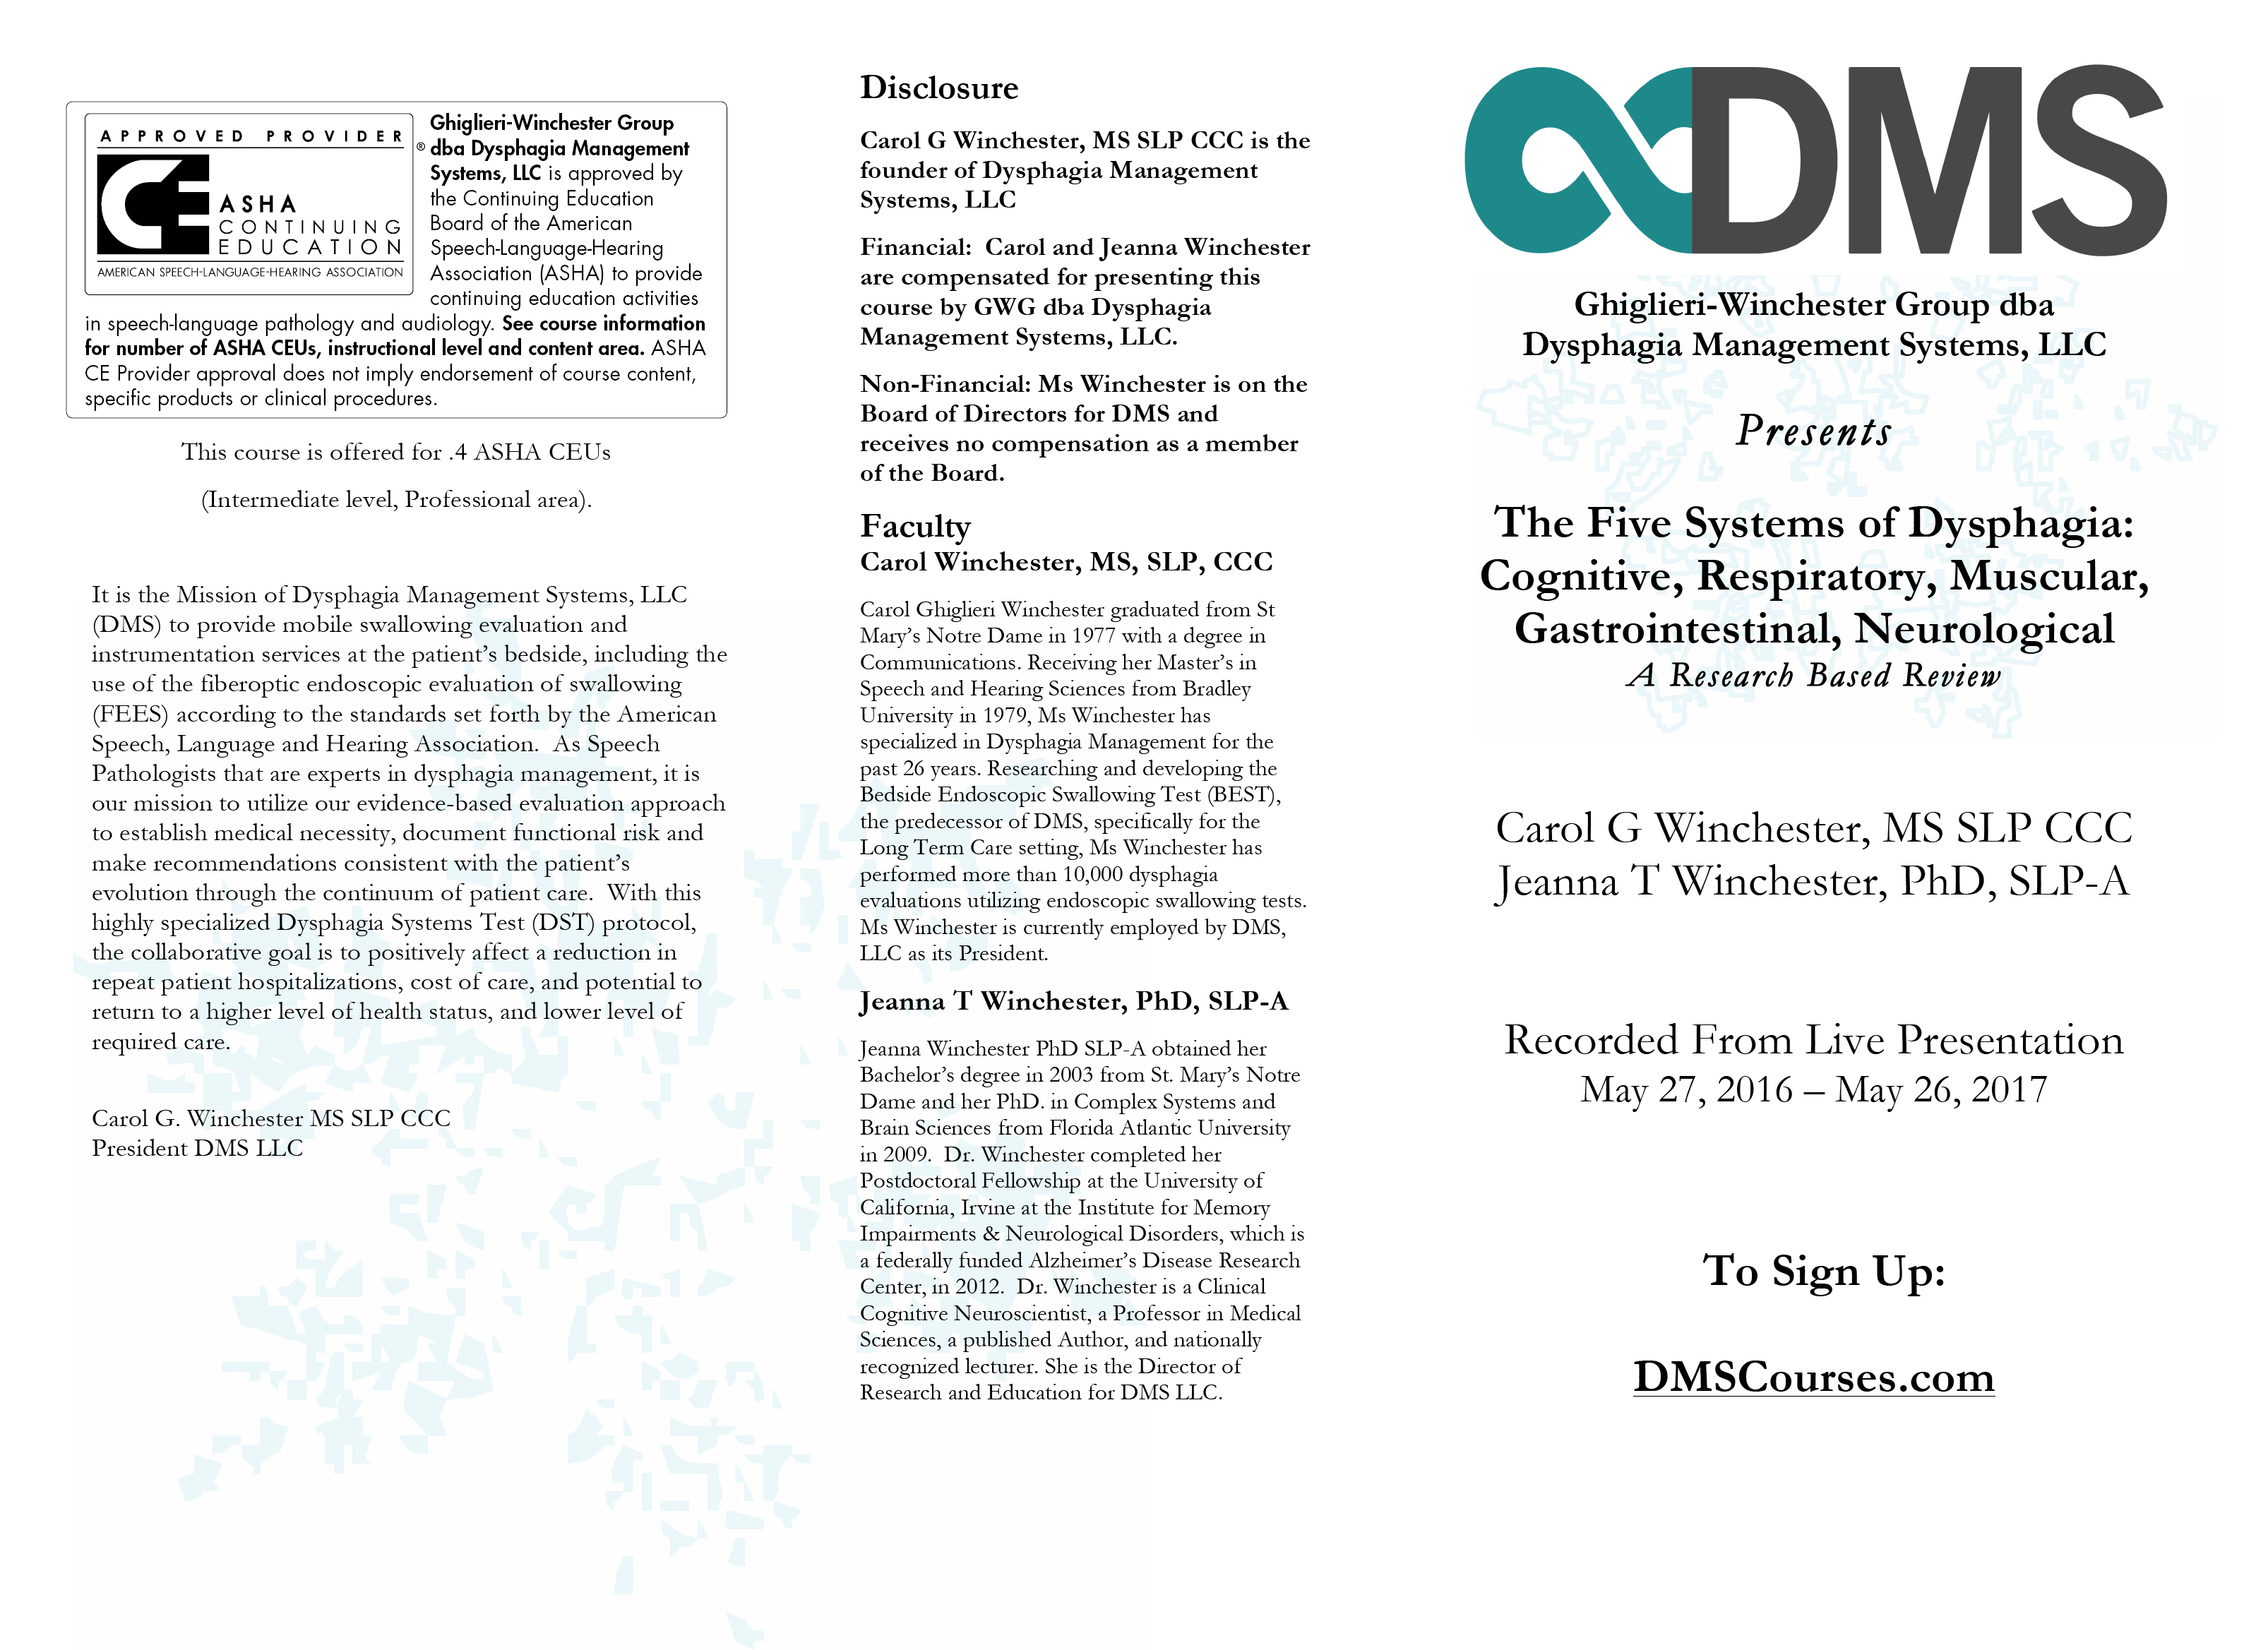 gwg-aaoq1616-r-the-five-systems-of-dysphagia-1